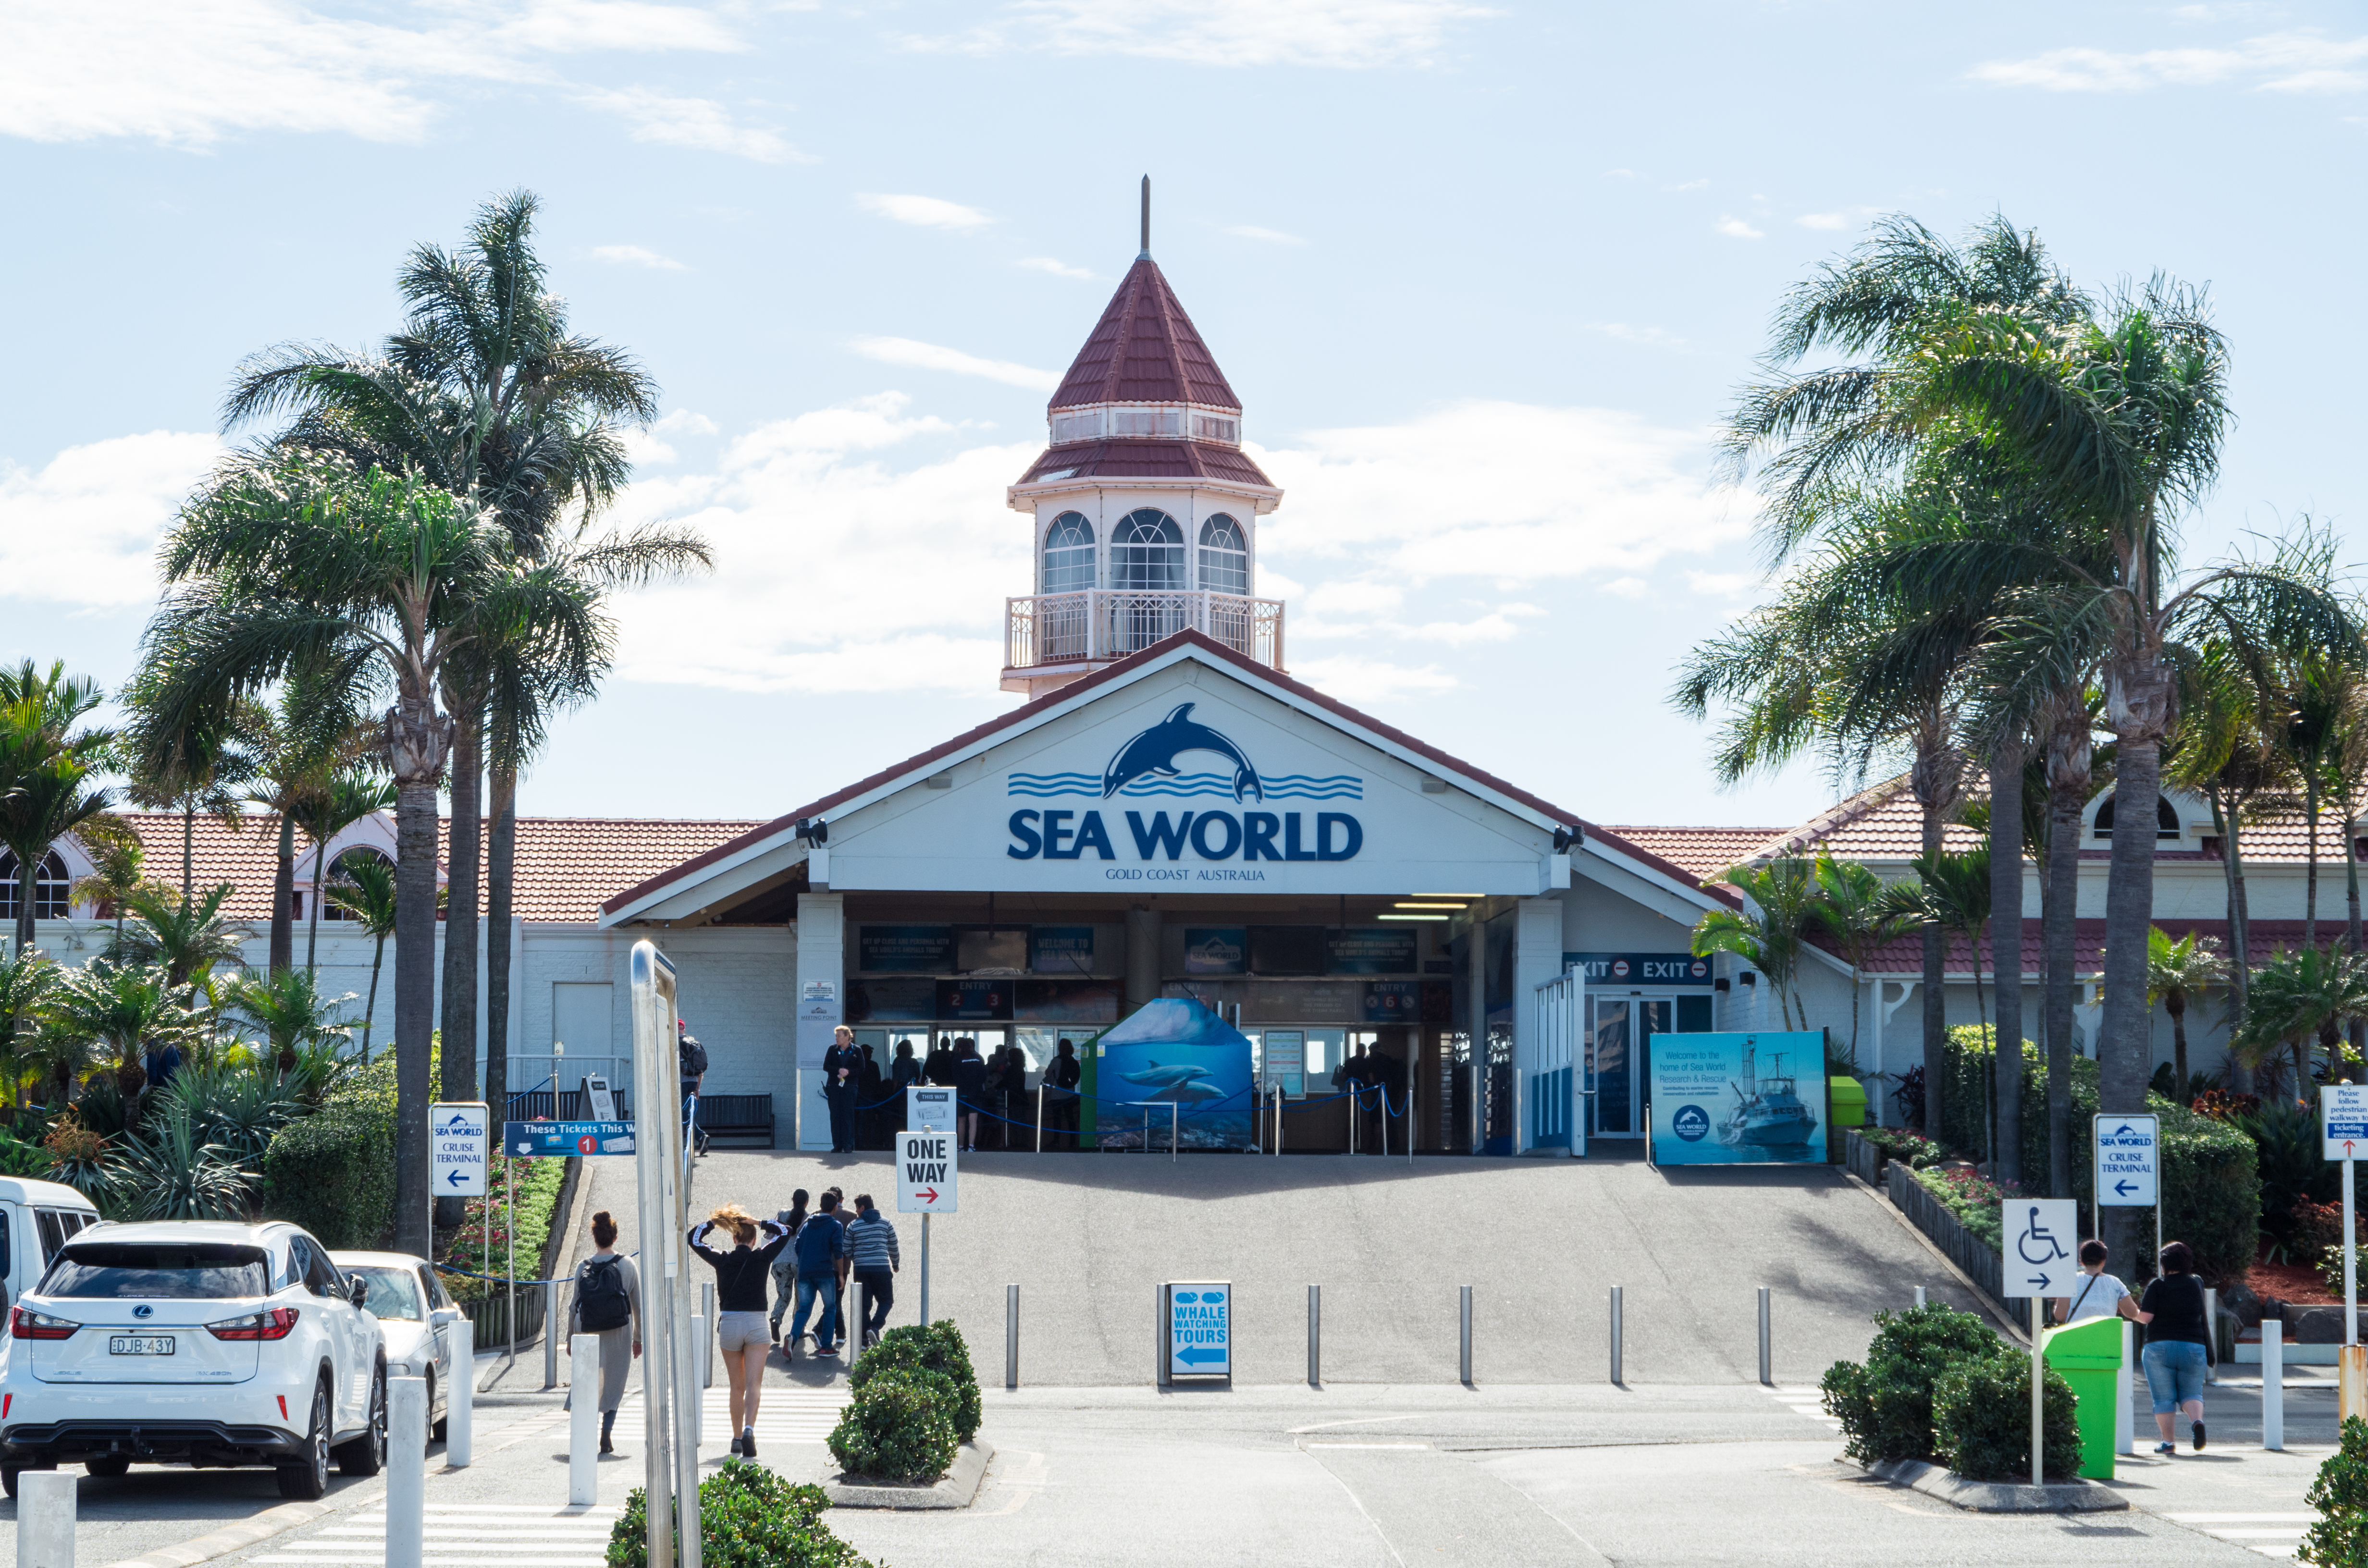 Queensland's Tourism Minister slams TripAdvisor for banning ticket sales to Sea World